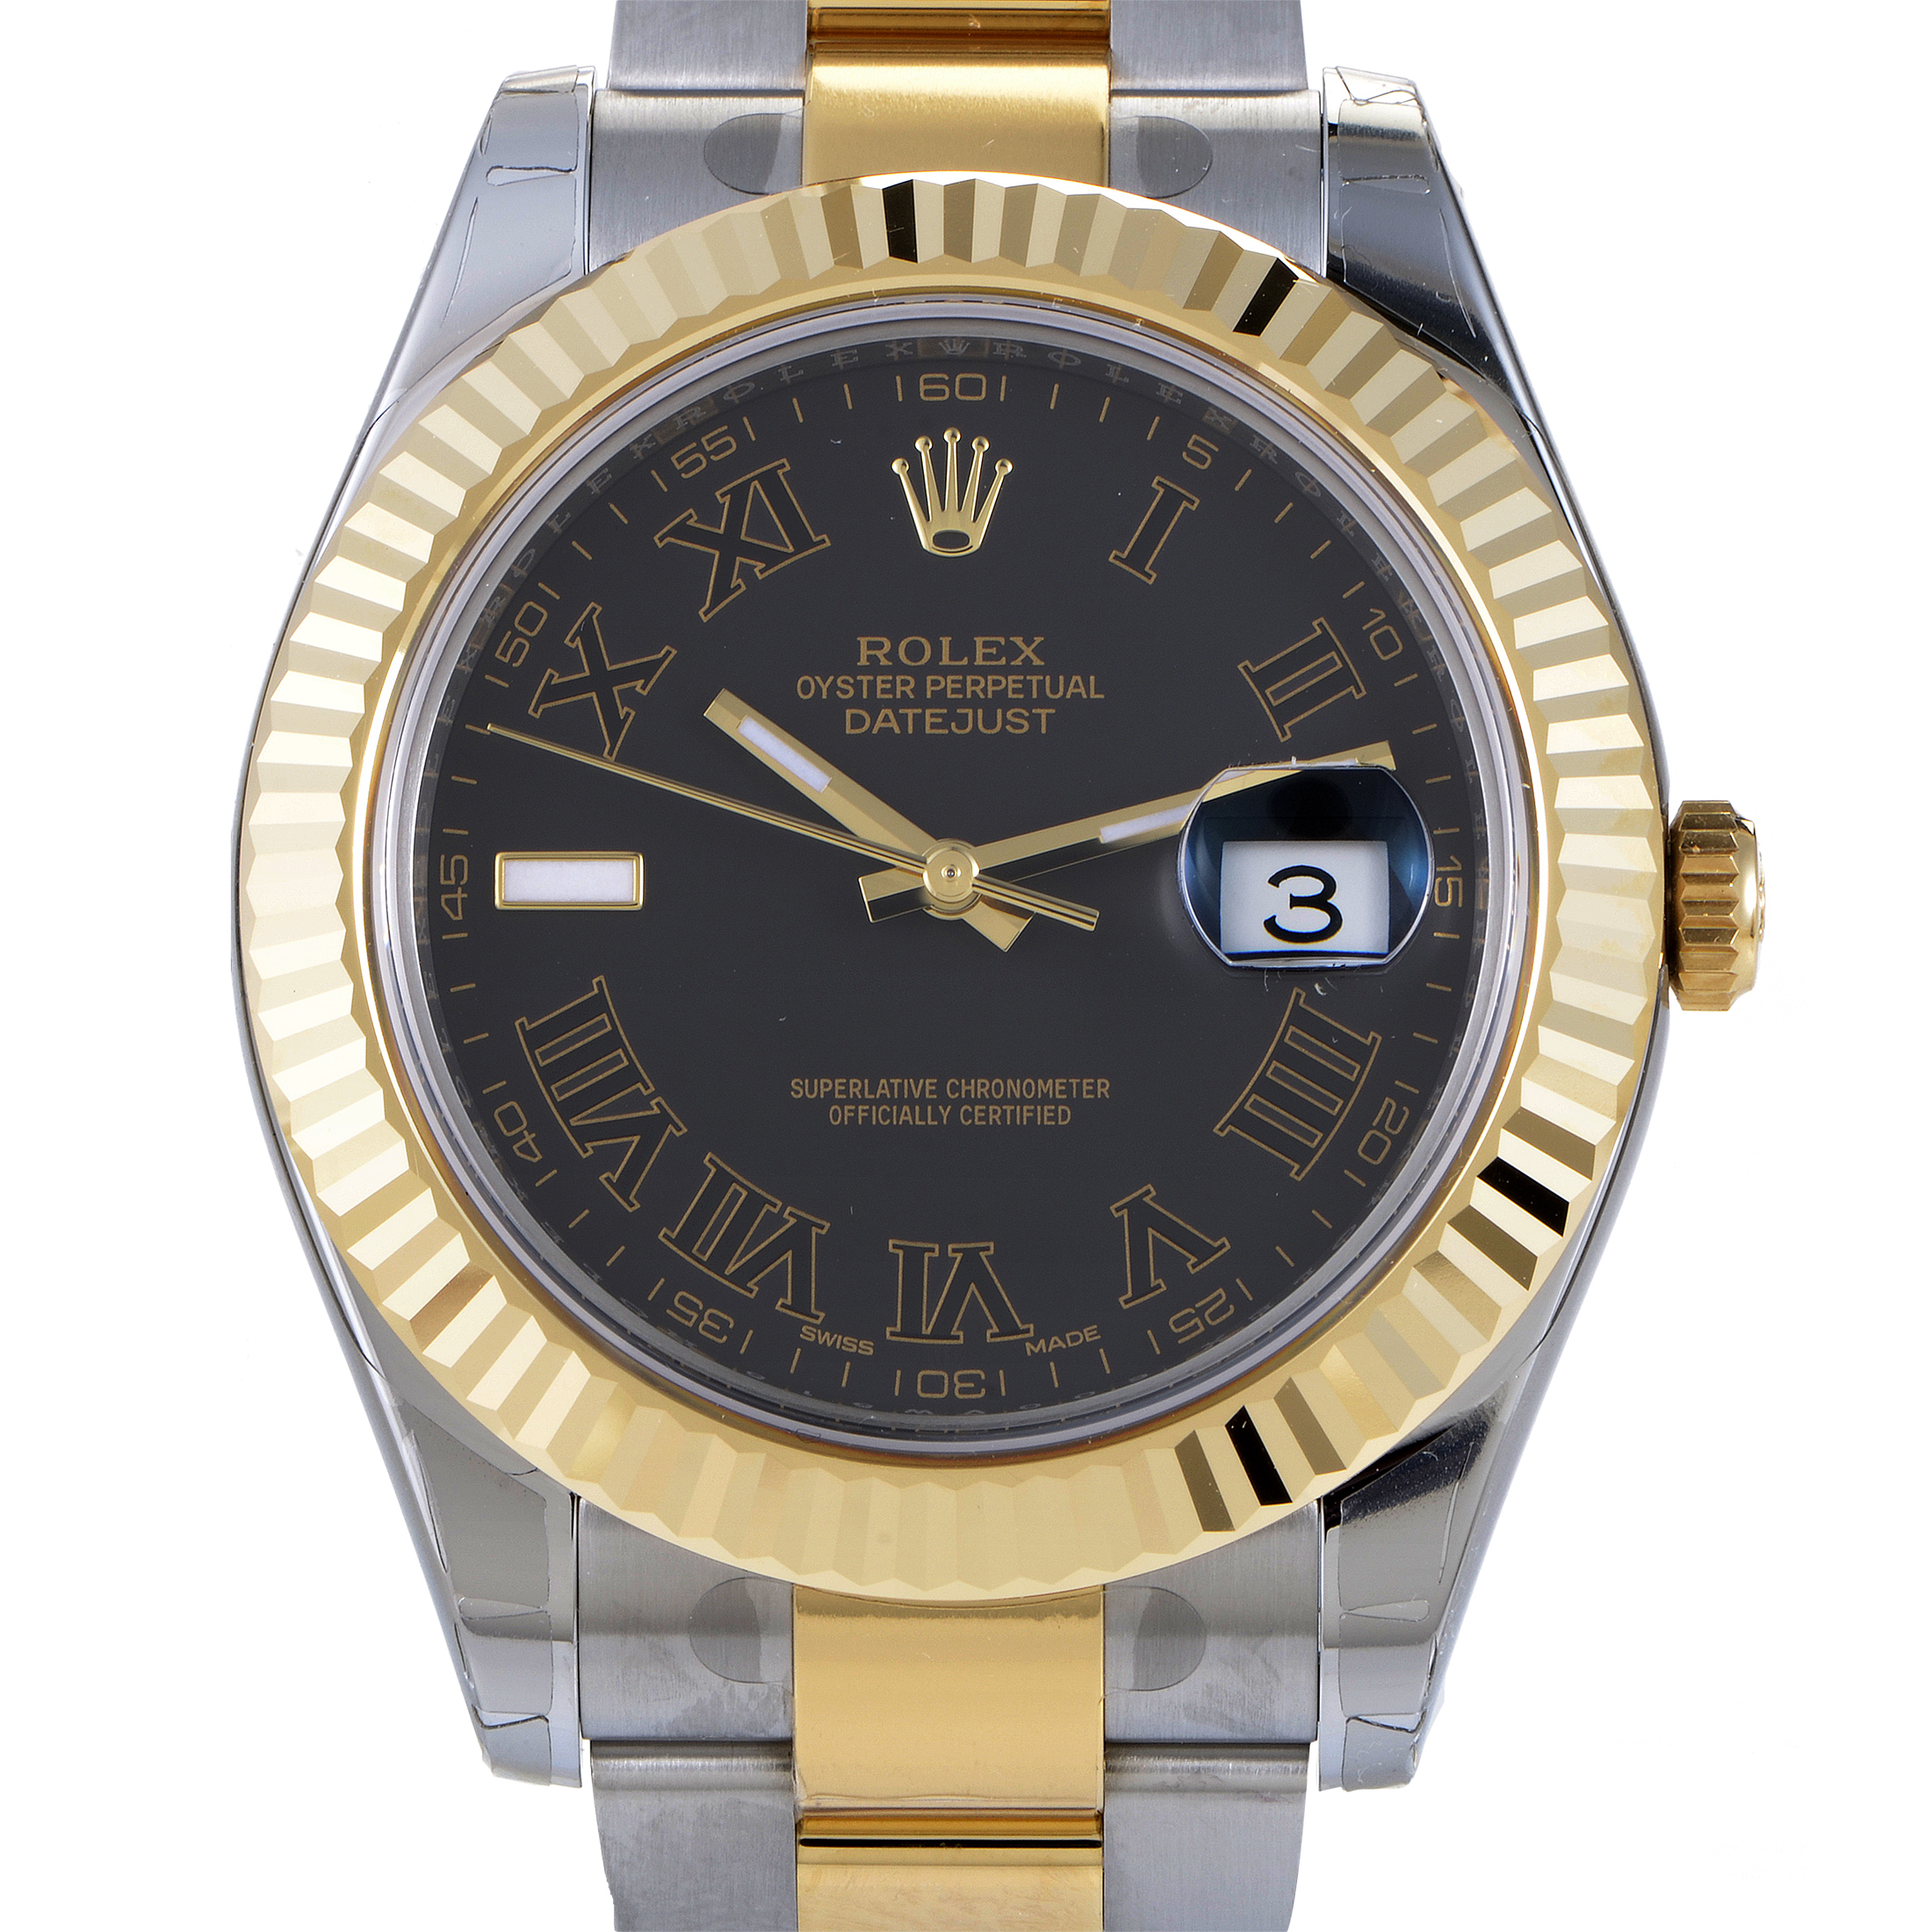 Oyster Perpetual Datejust II Men's Automatic Watch 116333 bkrio